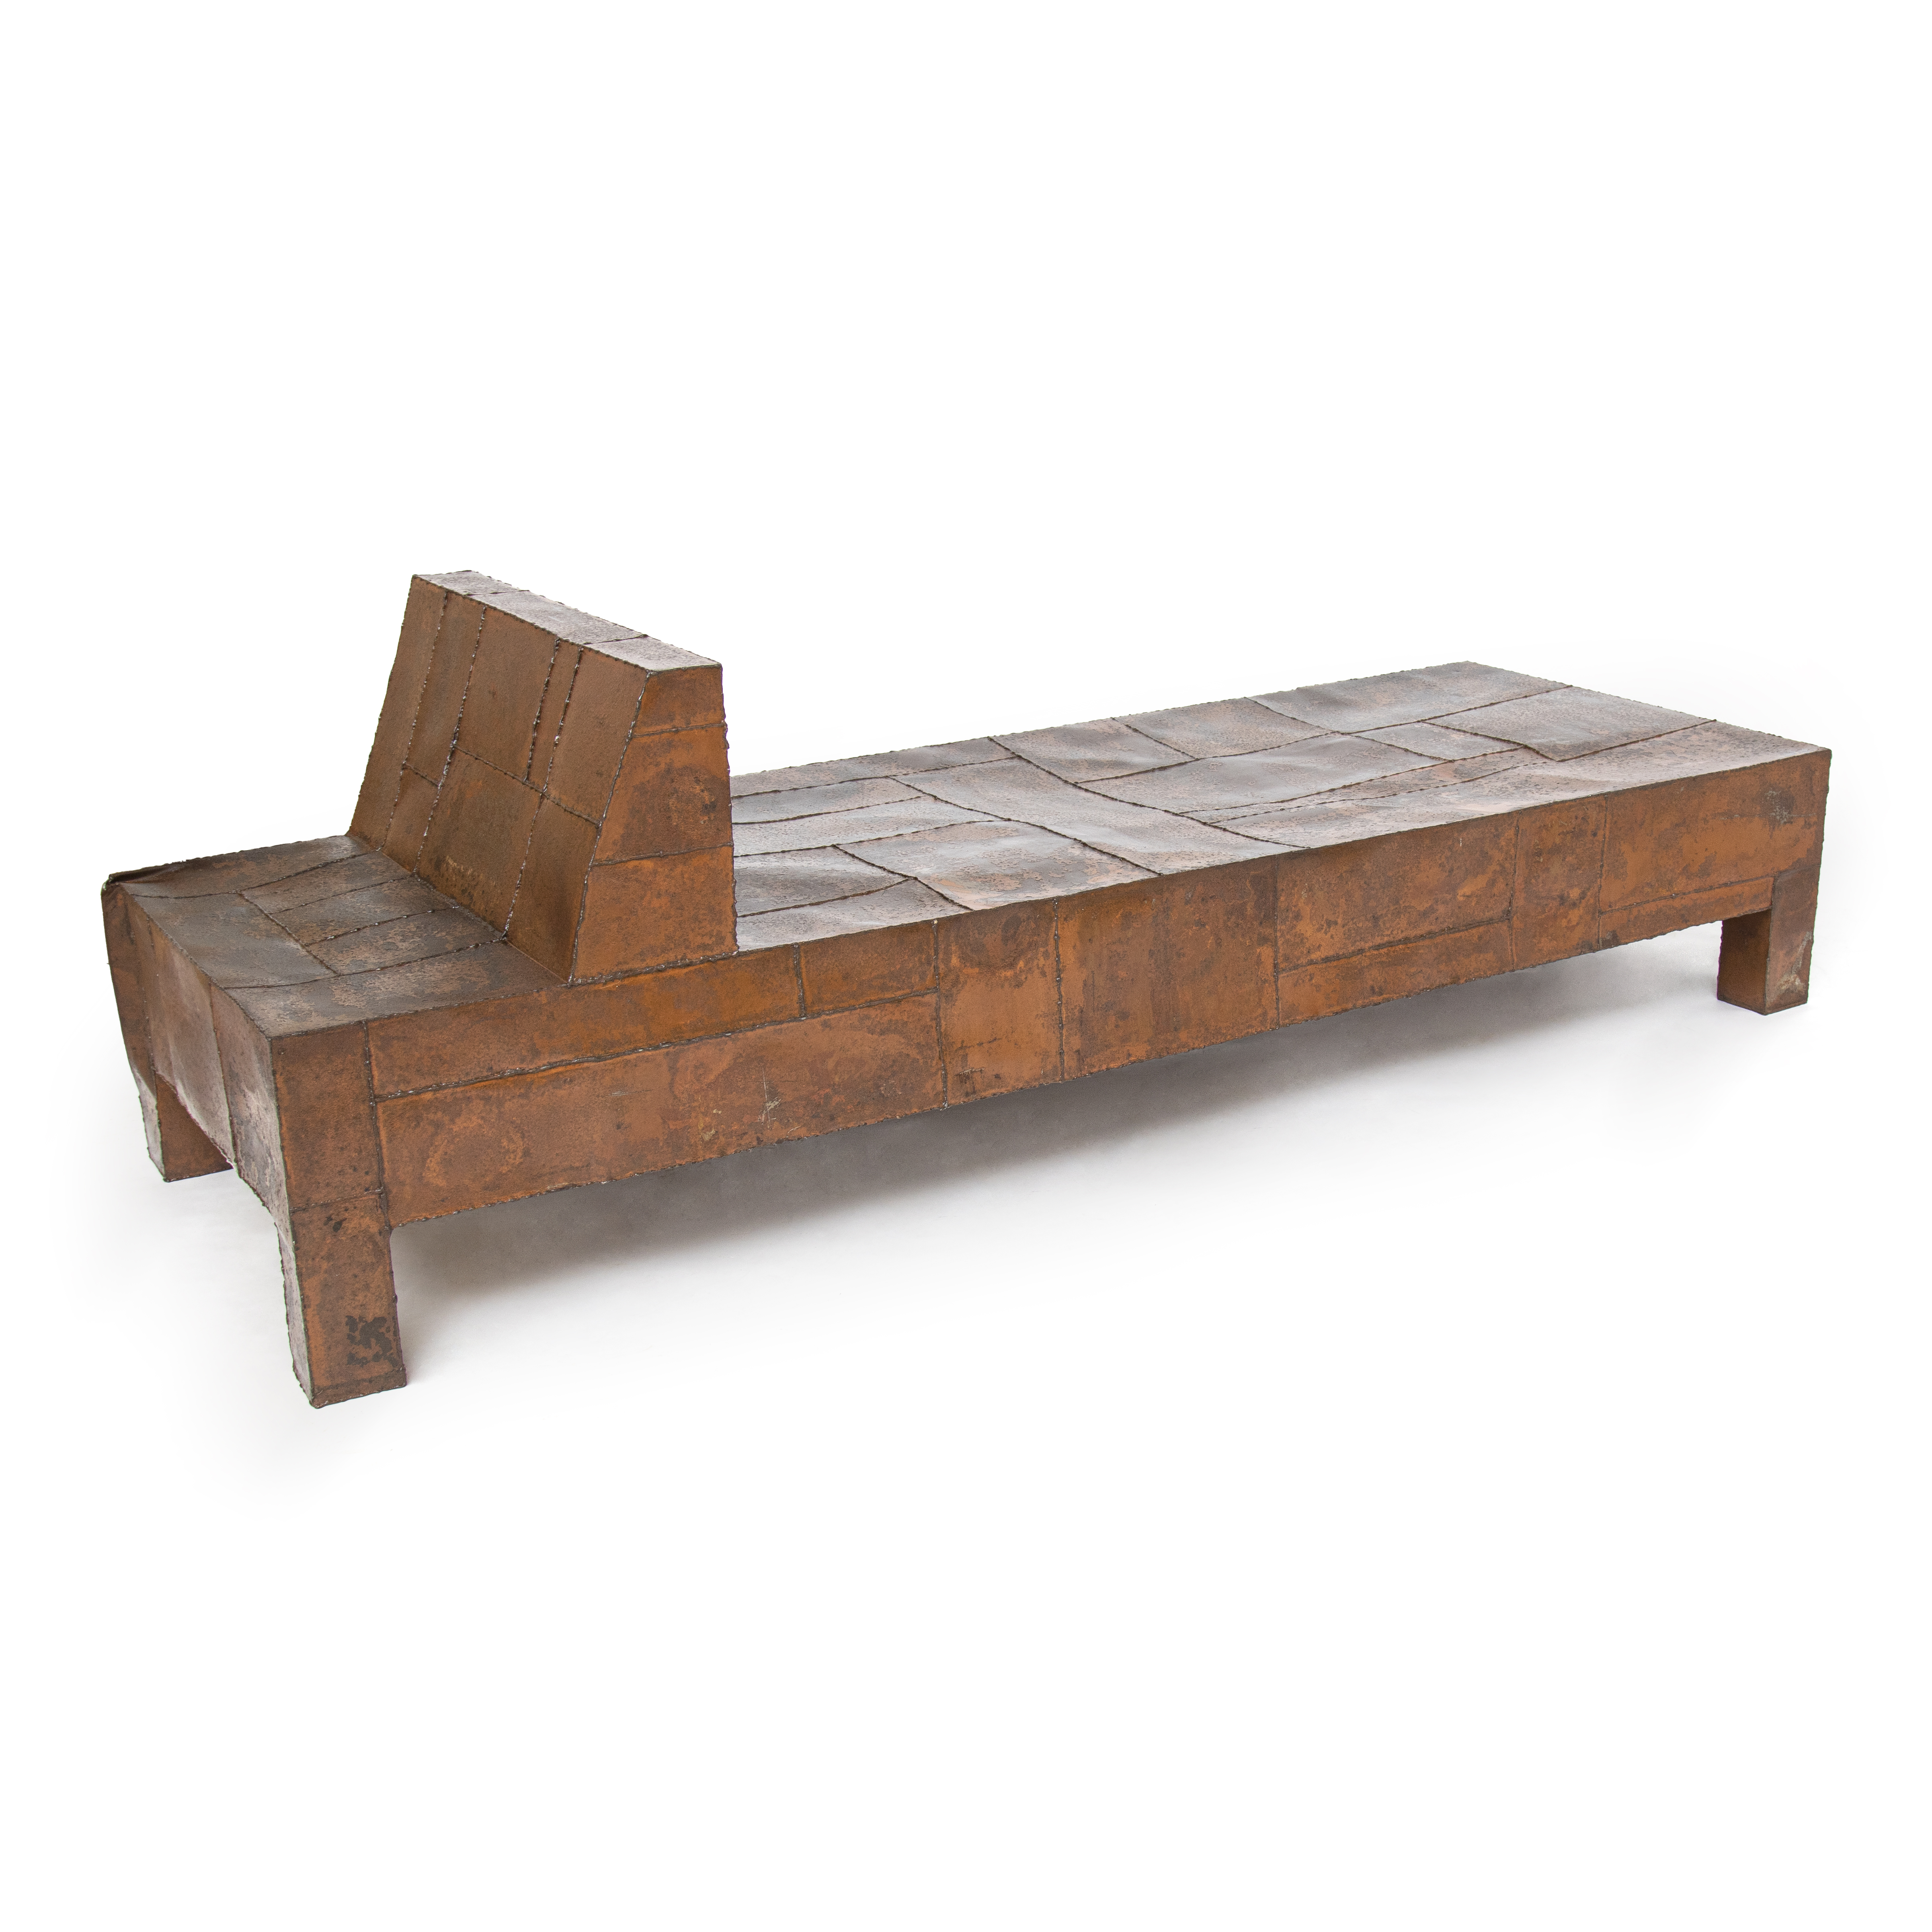 02_Welded_sofa_perspective01_THUMBNAIL